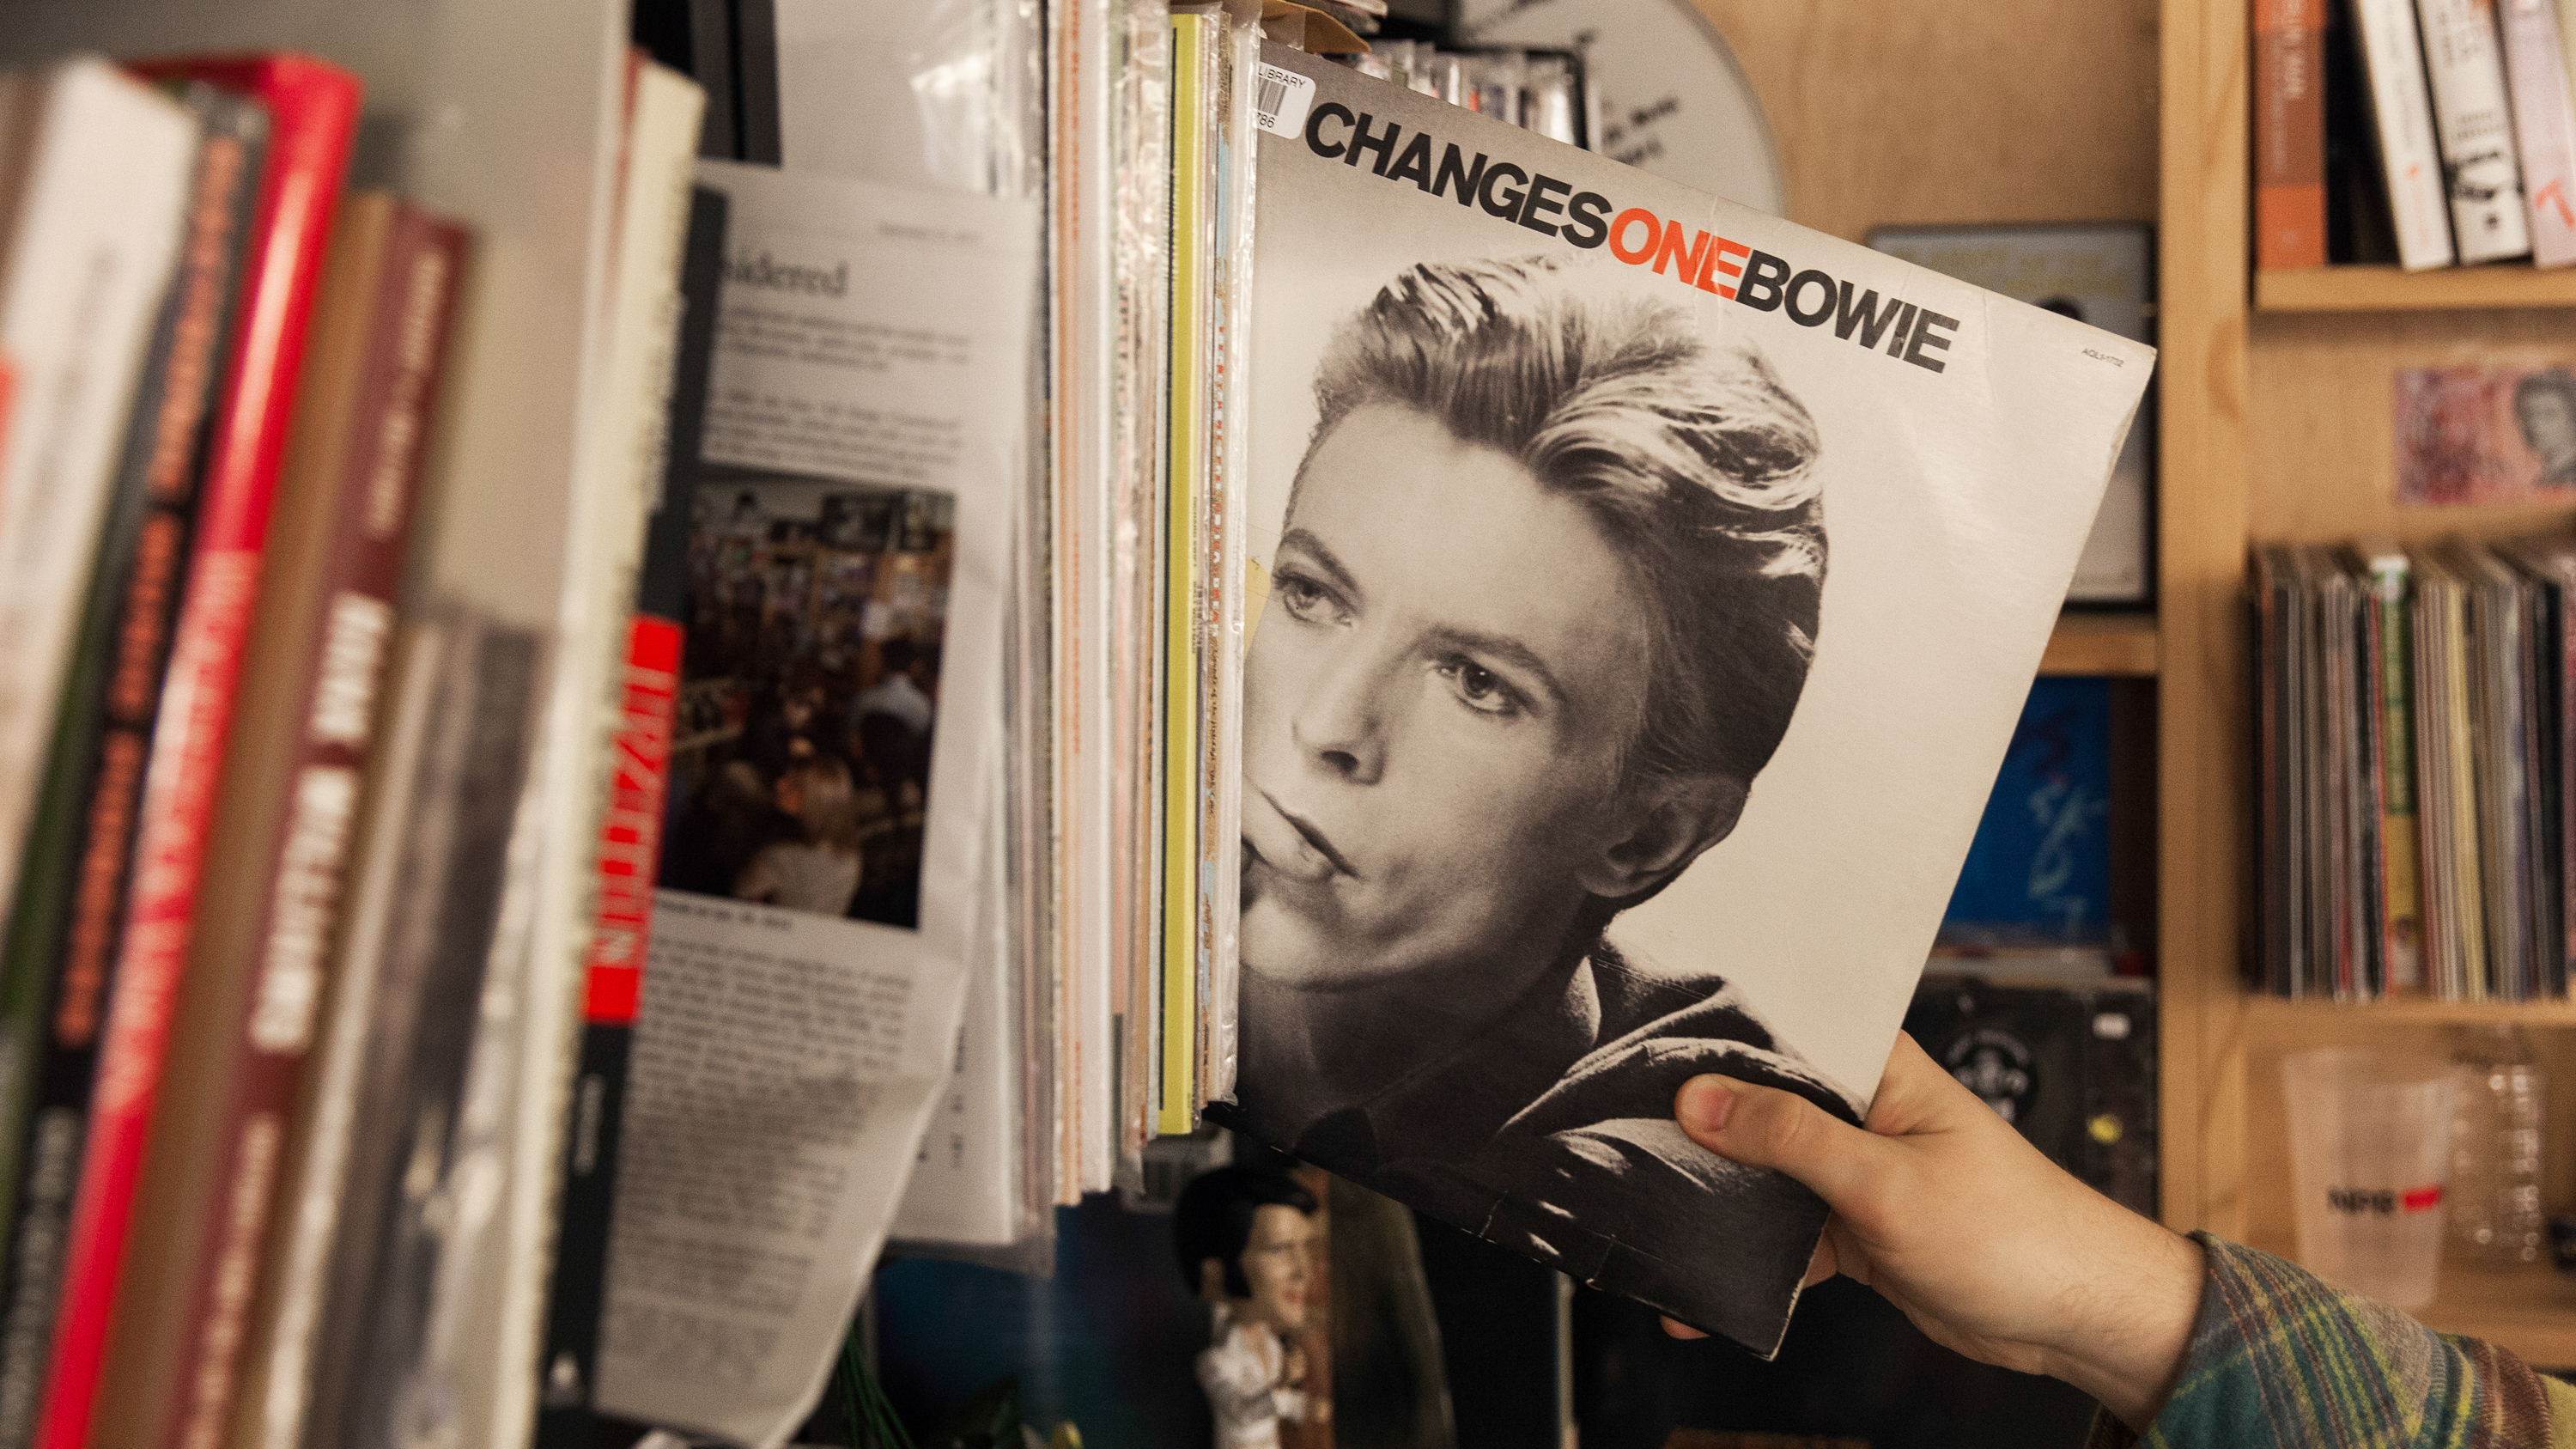 Listen: Your Memories Of A David Bowie Song